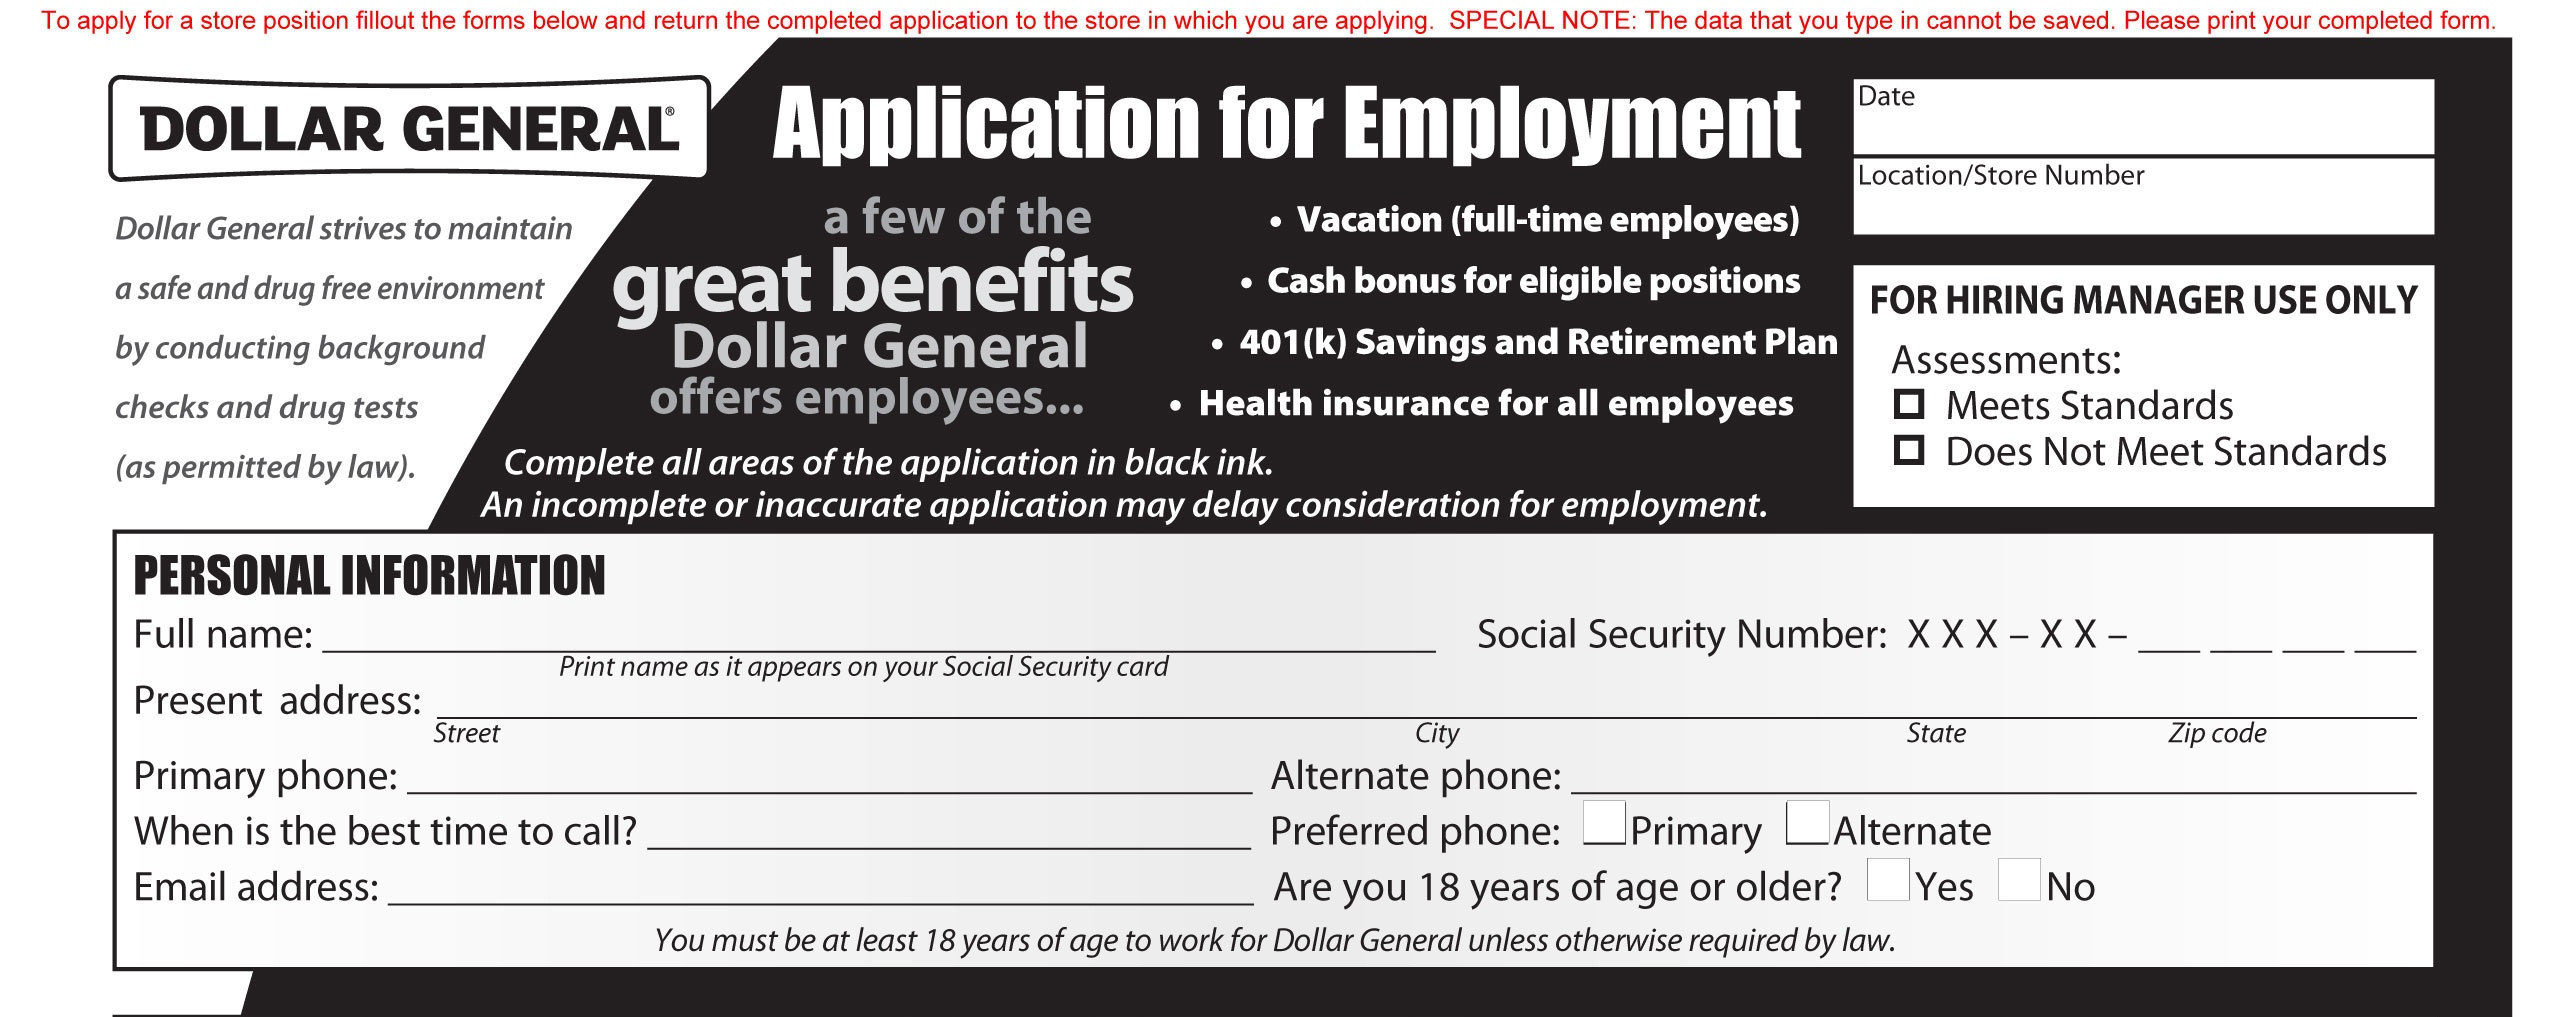 Dollar General Job Application - Printable Employment Pdf Forms - Free Printable Dollar Tree Application Form